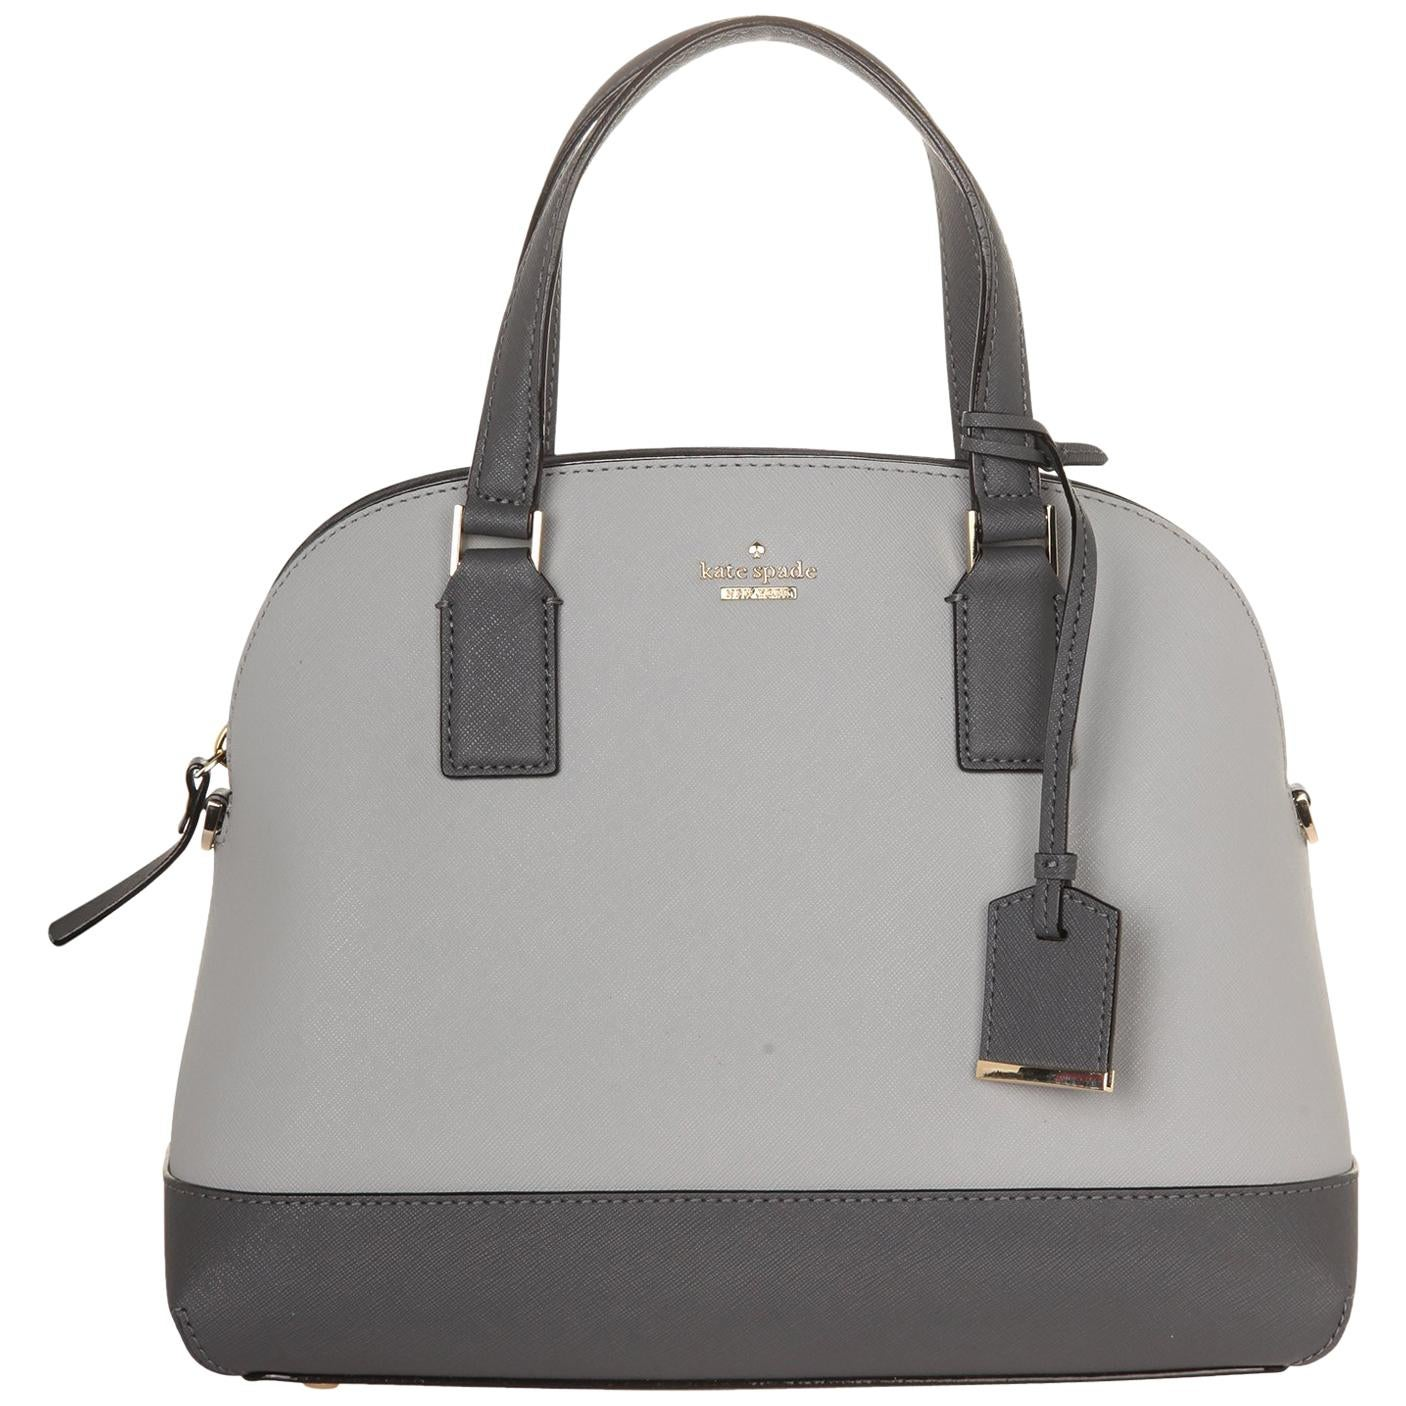 2010s Crossbody Bags and Messenger Bags - 278 For Sale at 1stdibs - Page 2 28641b6f1c38d